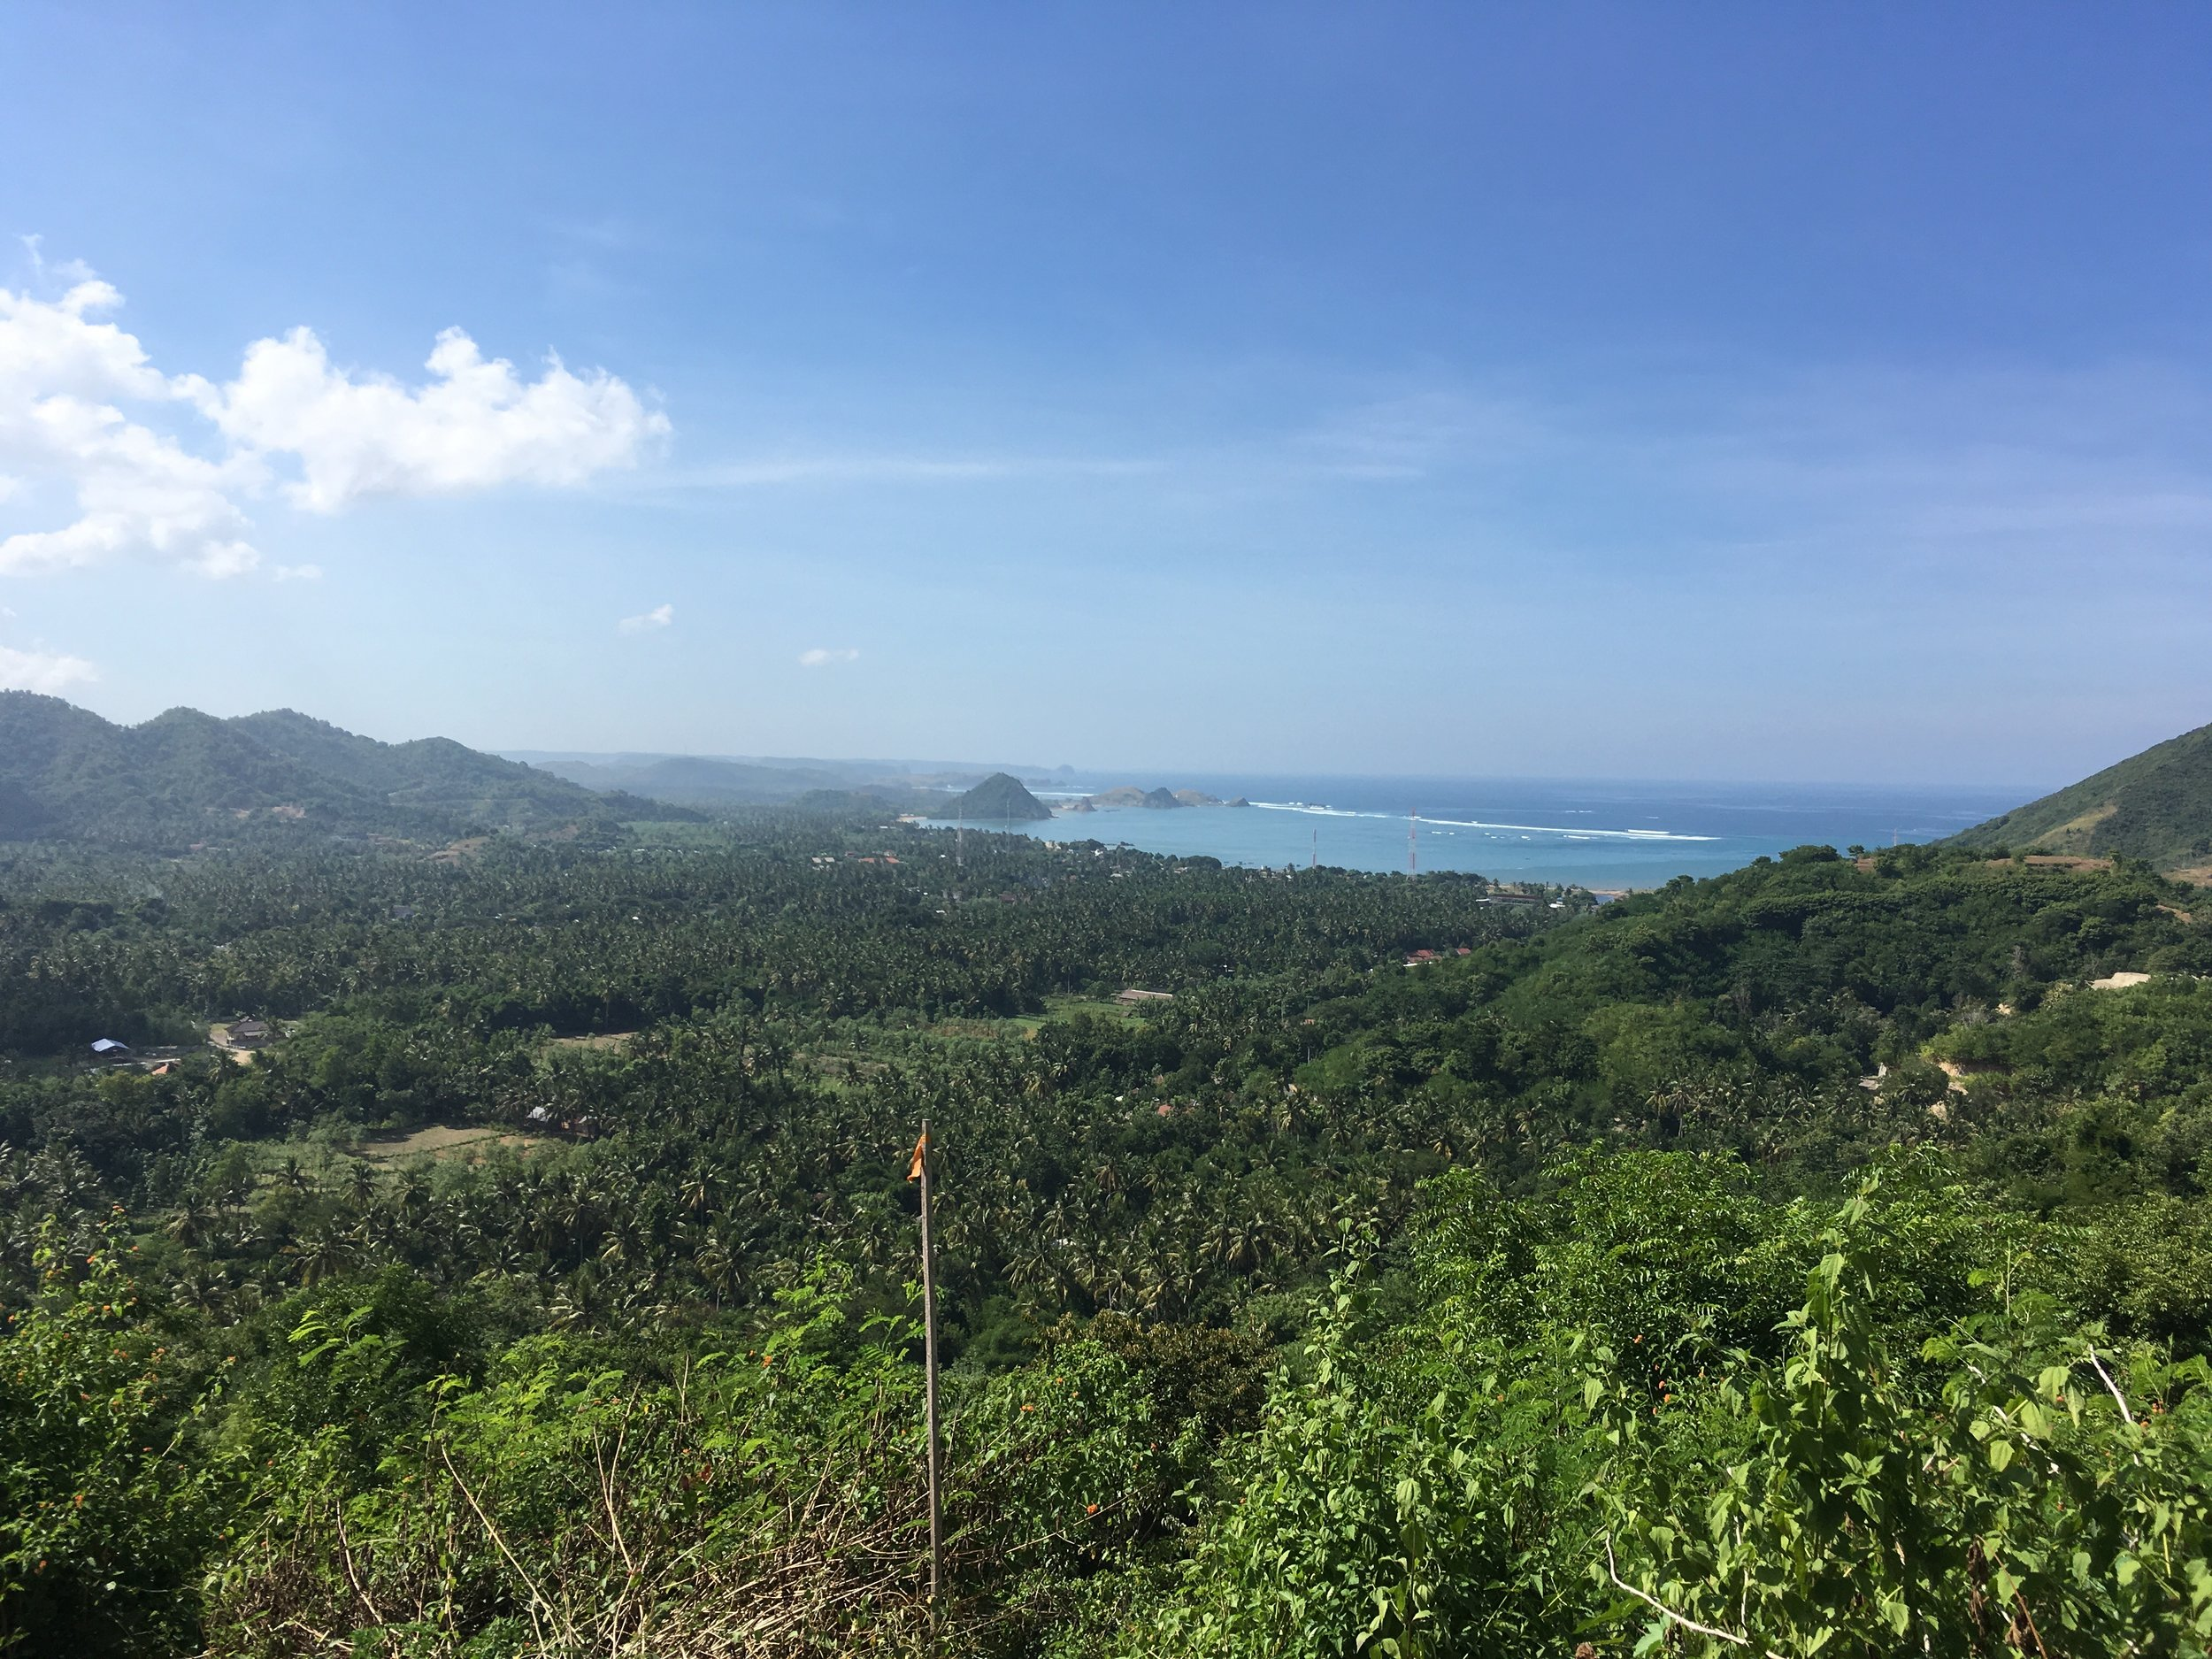 A view of the sea from Lombok island